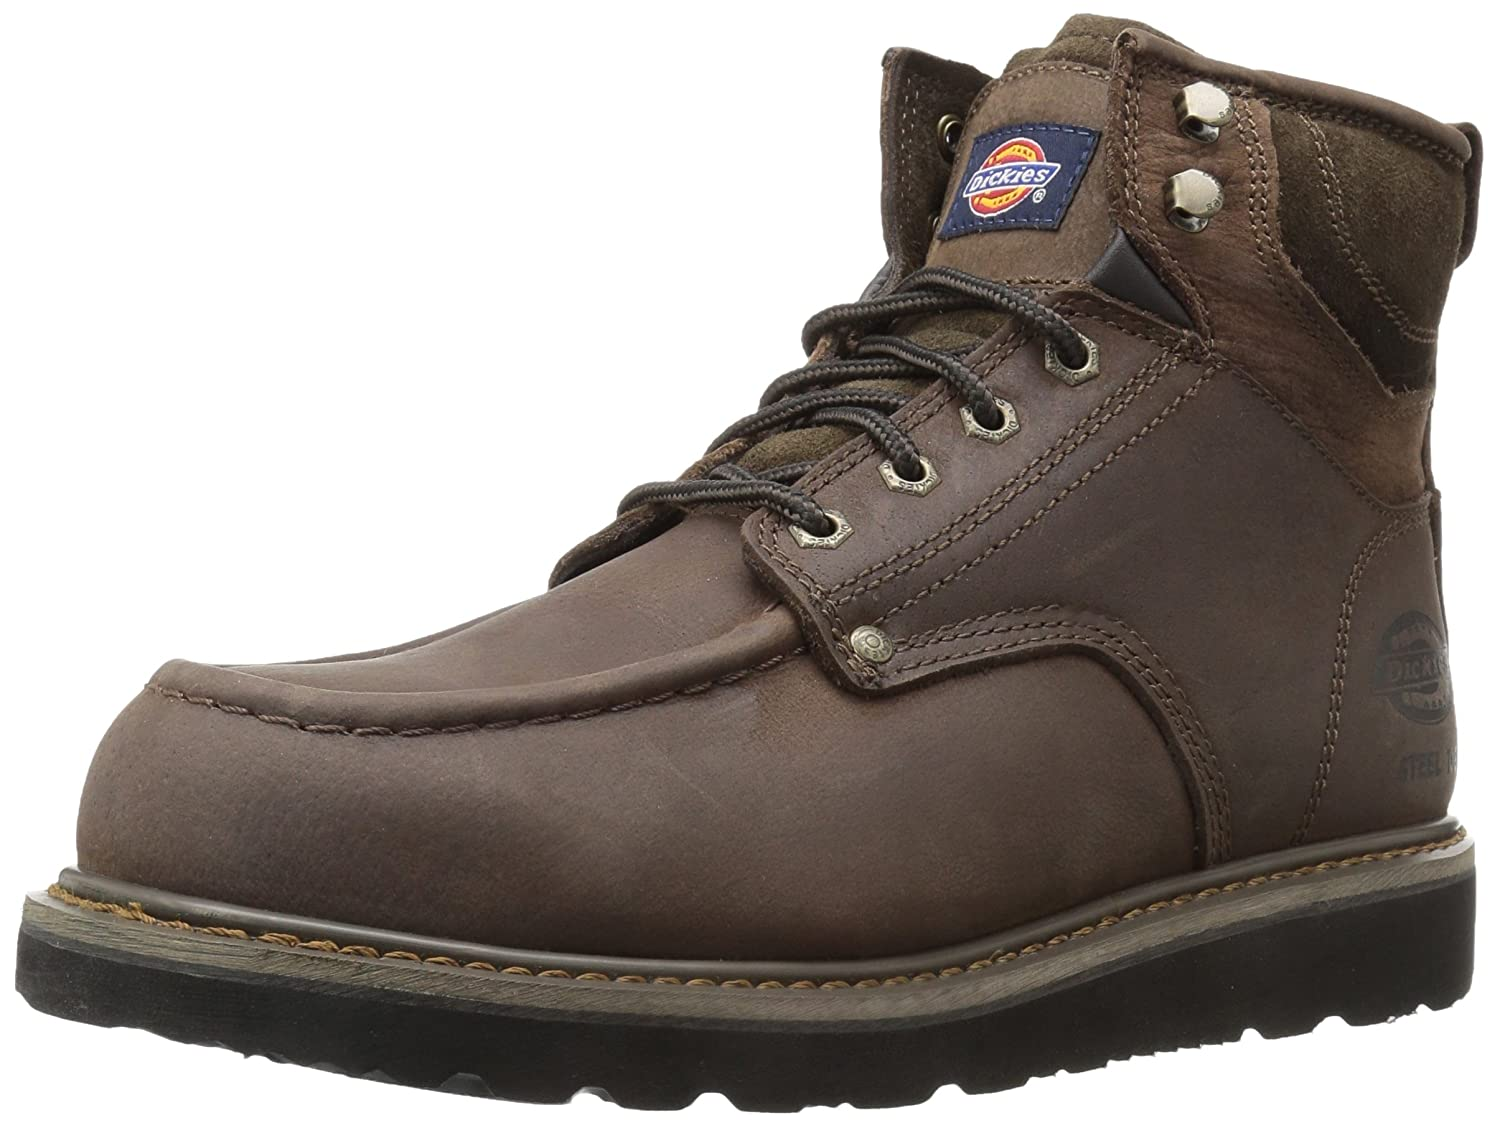 4b06a17ae98 Dickies Men's Outpost Work Boot